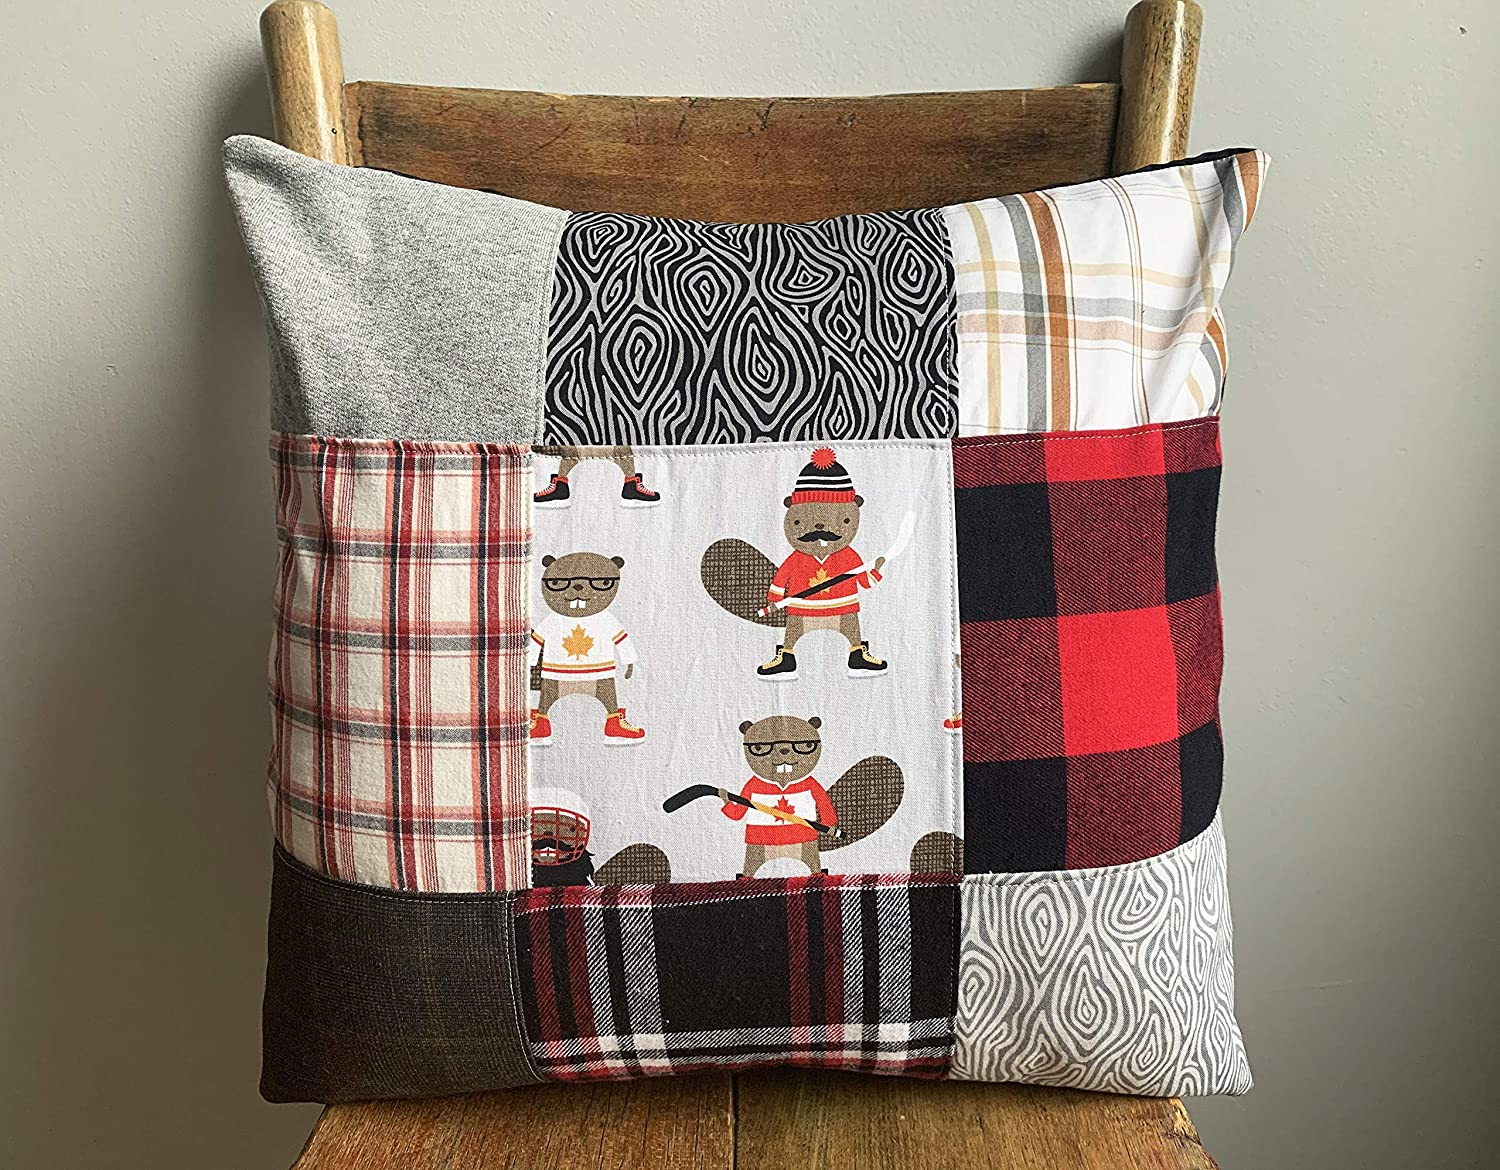 16x16 Lumberjack Rustic Cottage Decor Buffalo Plaid Canadiana Beavers Woodland Style Flannel Cushion Cover Fun Gift Toques Hockey Handmade in Canada Patchwork Pillow Cover Canada Pillow